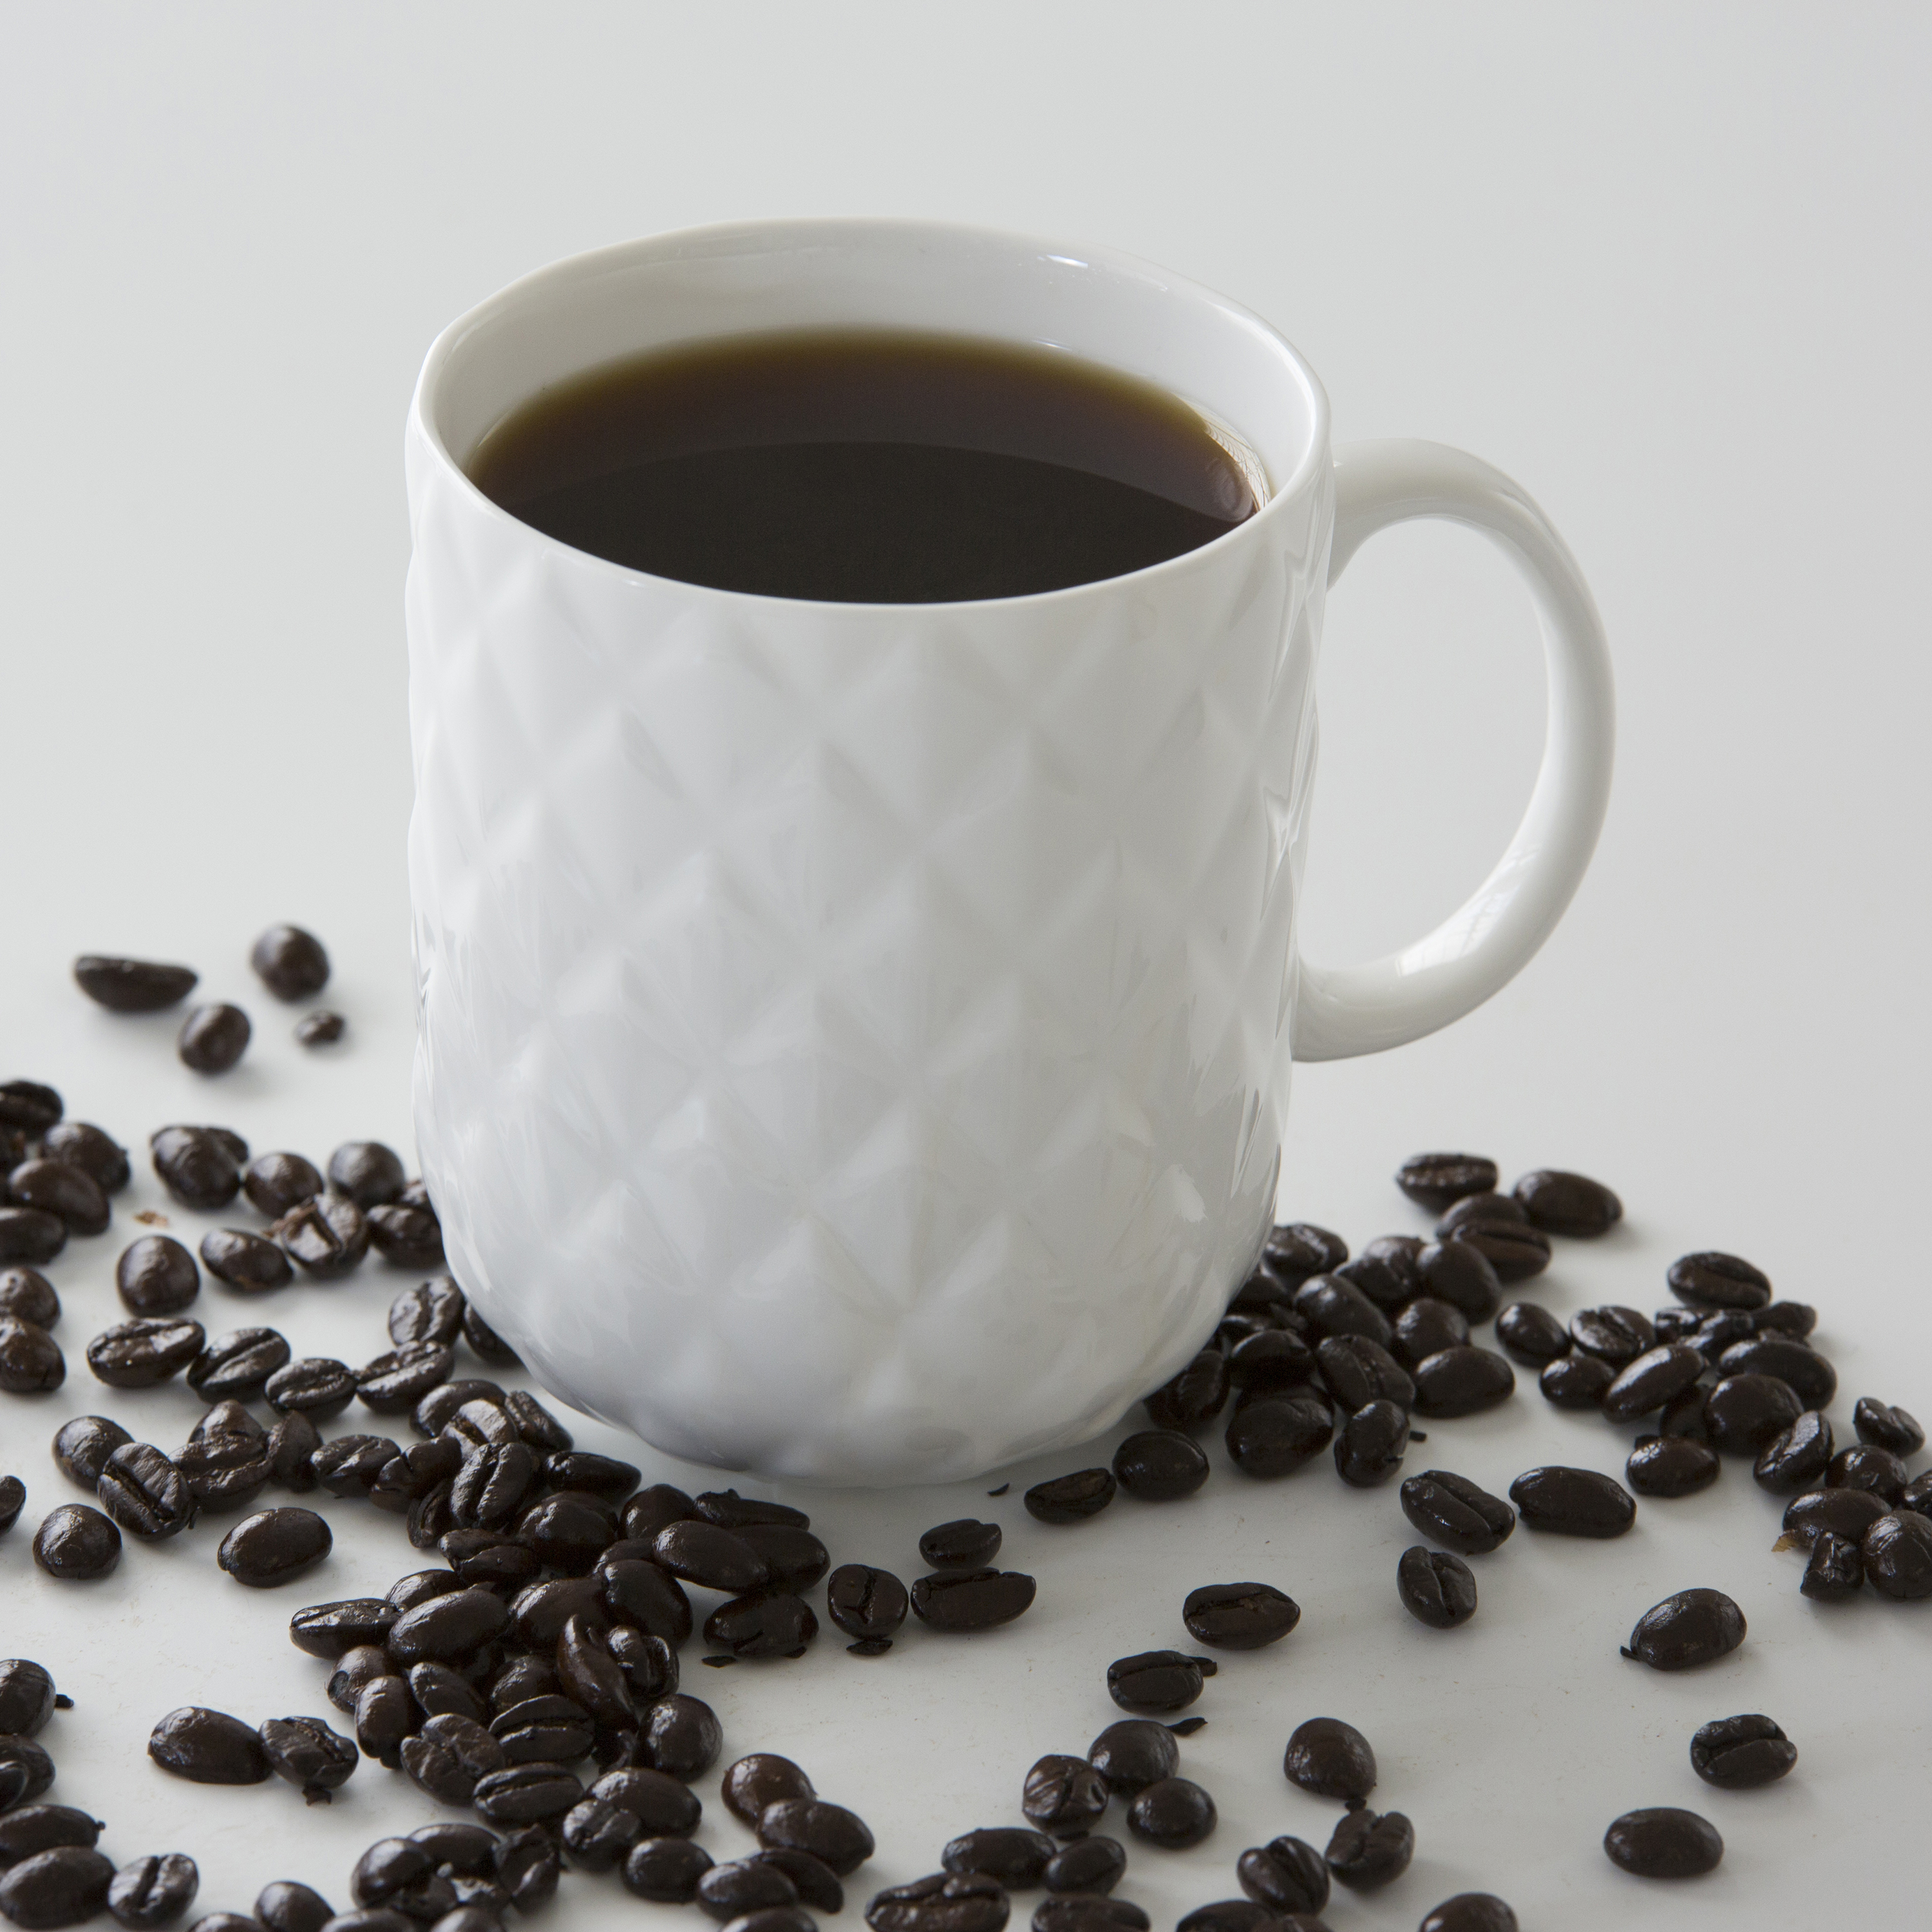 15 Oz. Nature's Garden Pineapple Mug, 3.5